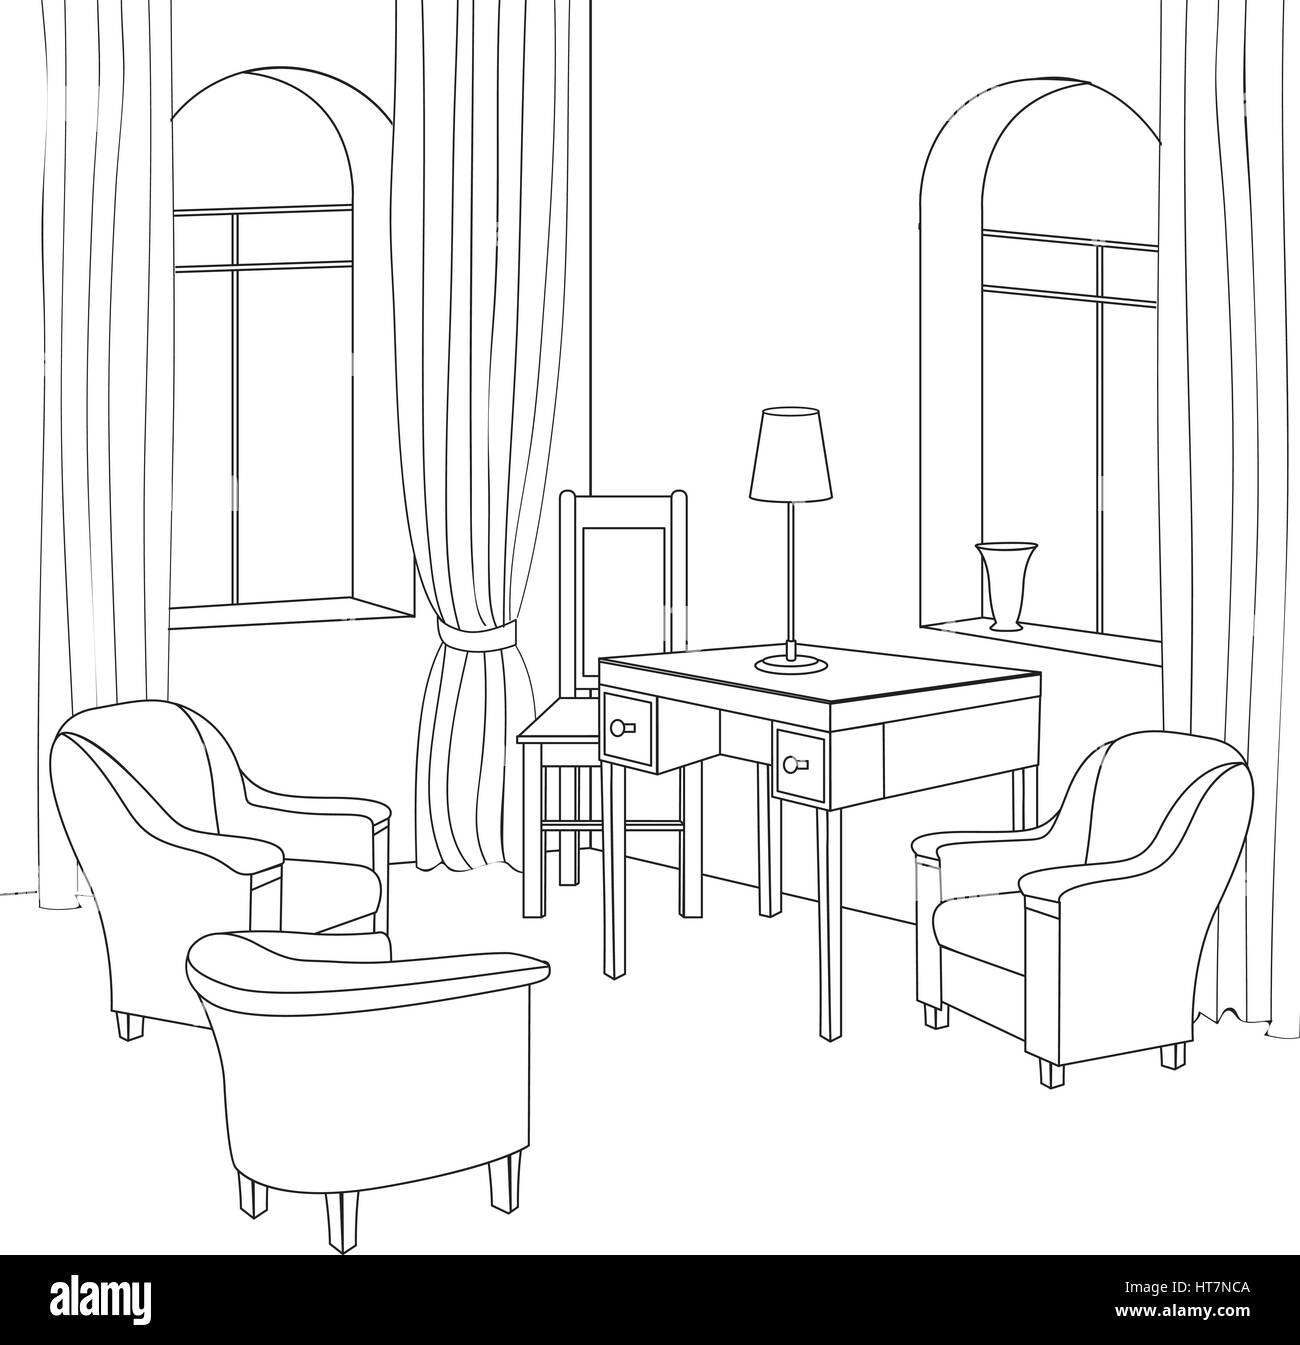 Living room drawing design - Home Interior Furniture With Sofa Armchair Table Living Room Drawing Design Engraves Hand Drawing Vector Illustration